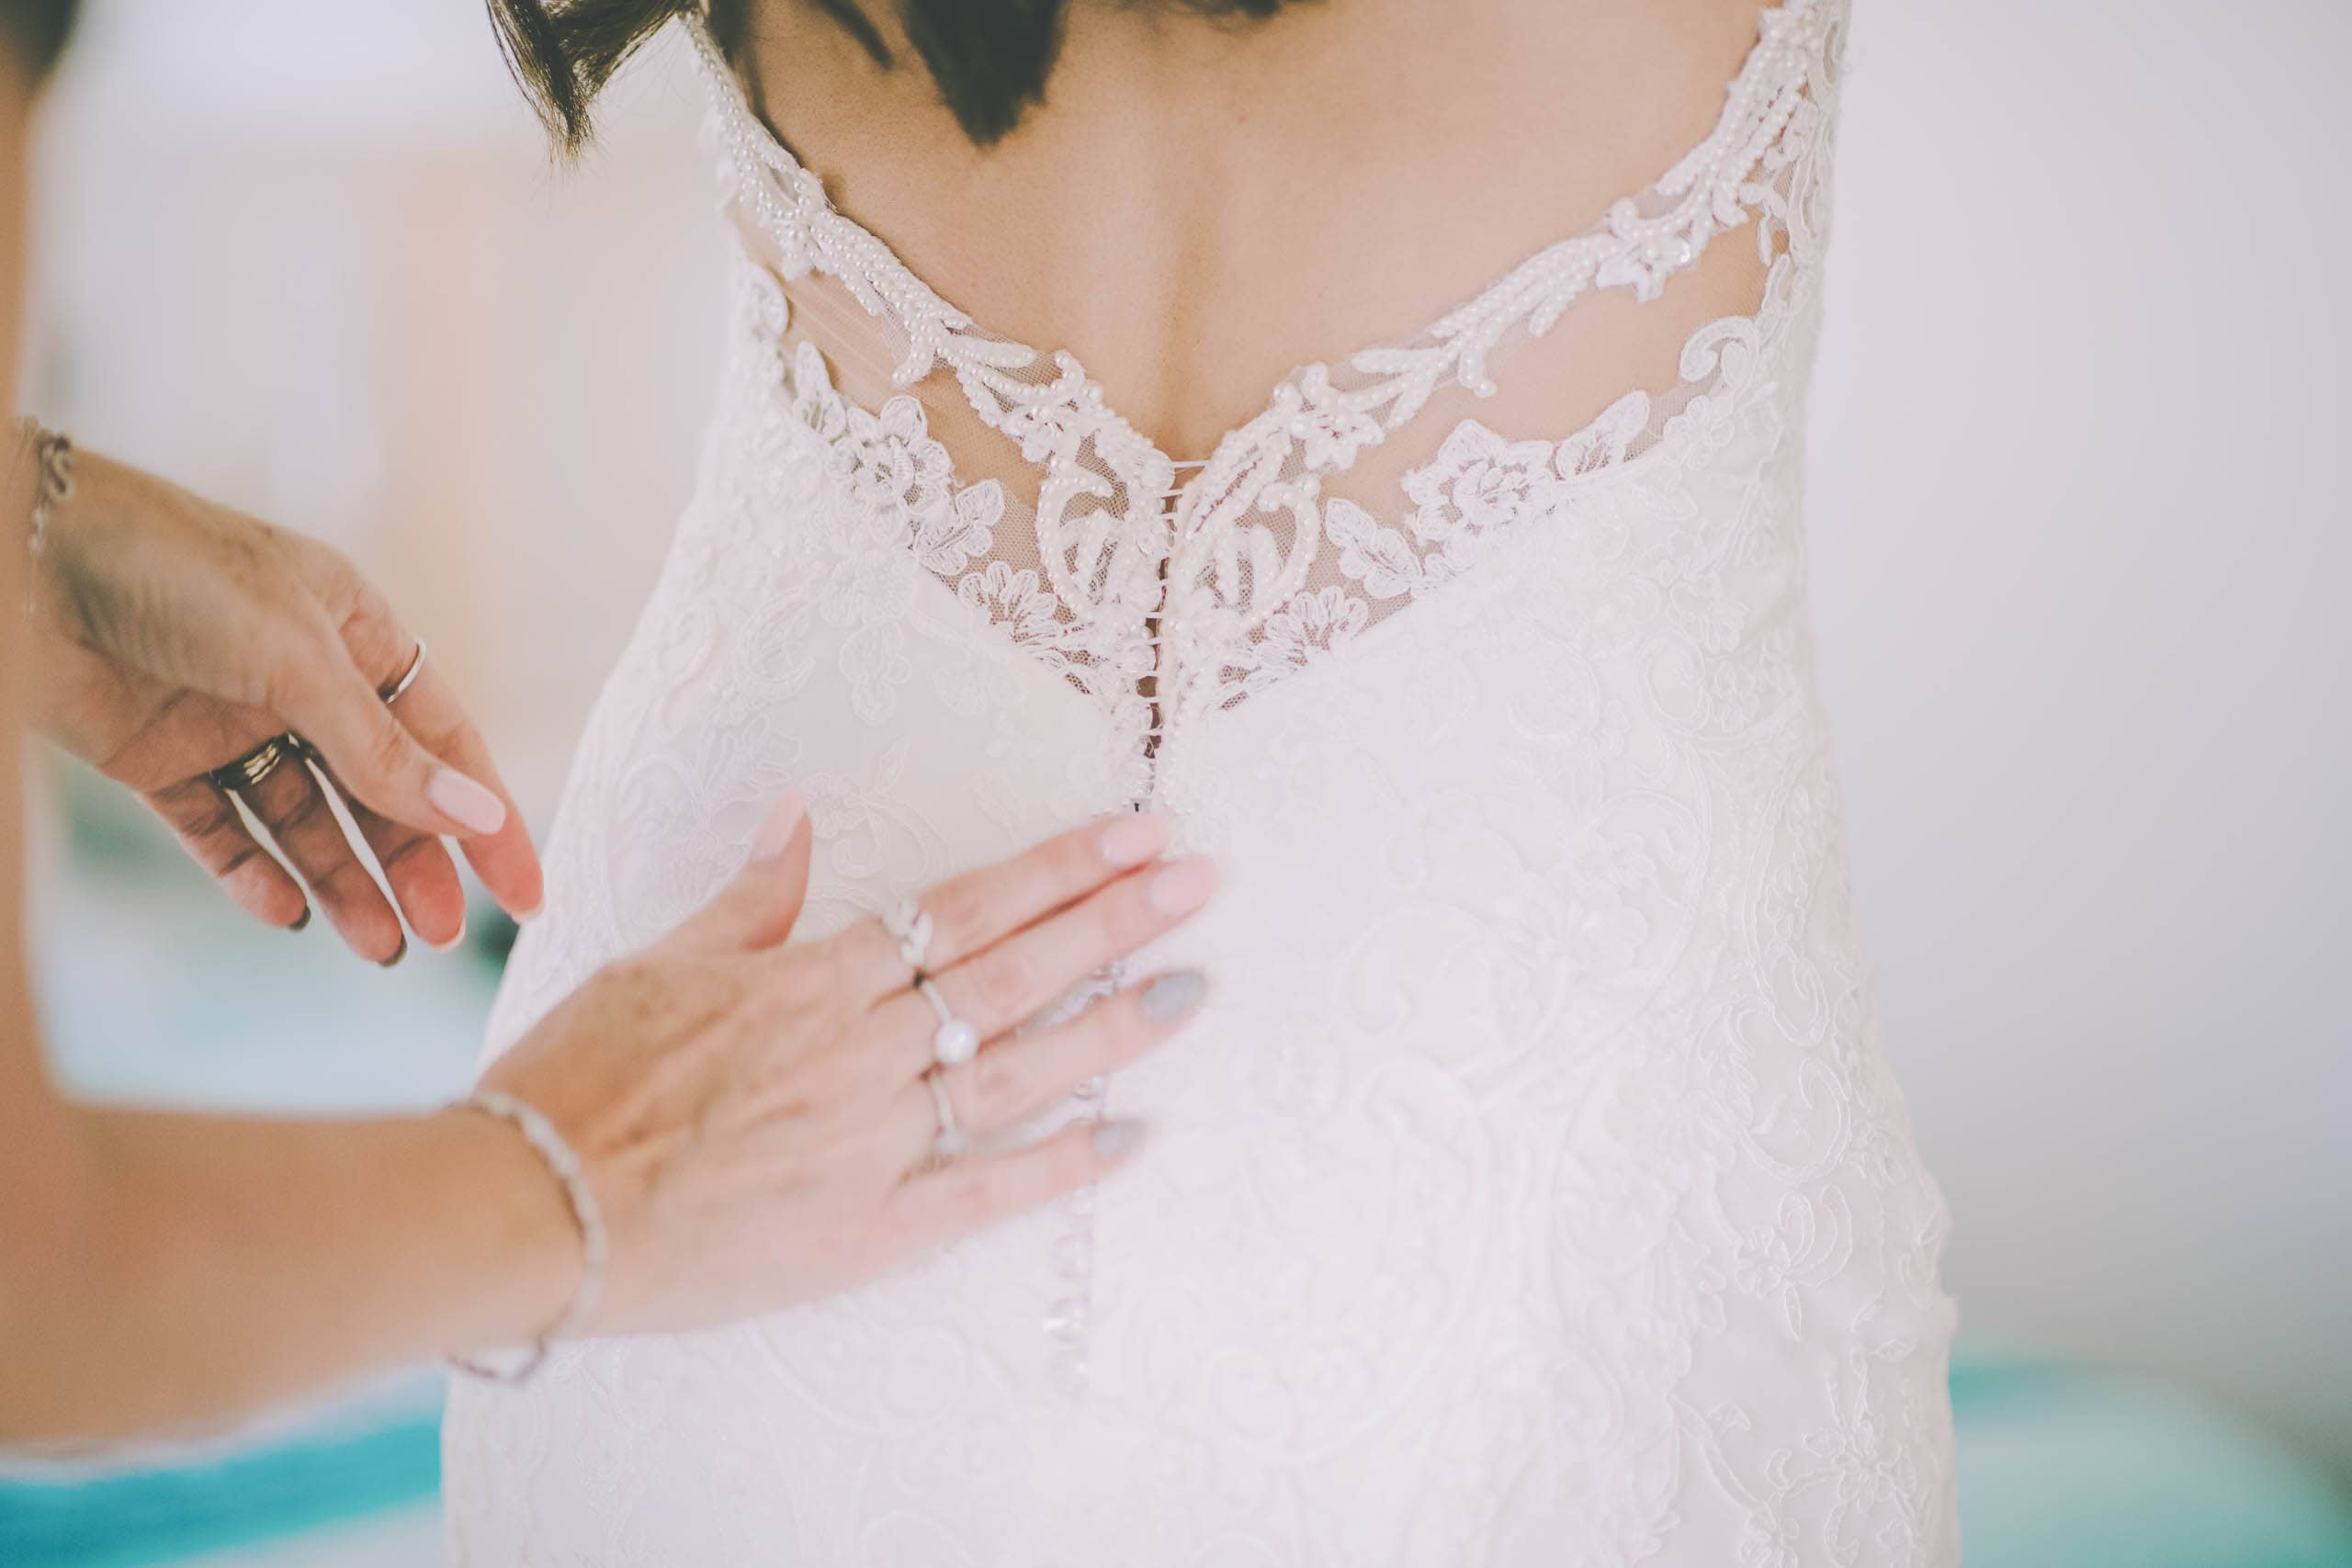 A bride has her dress done up before her Sorrento beach wedding